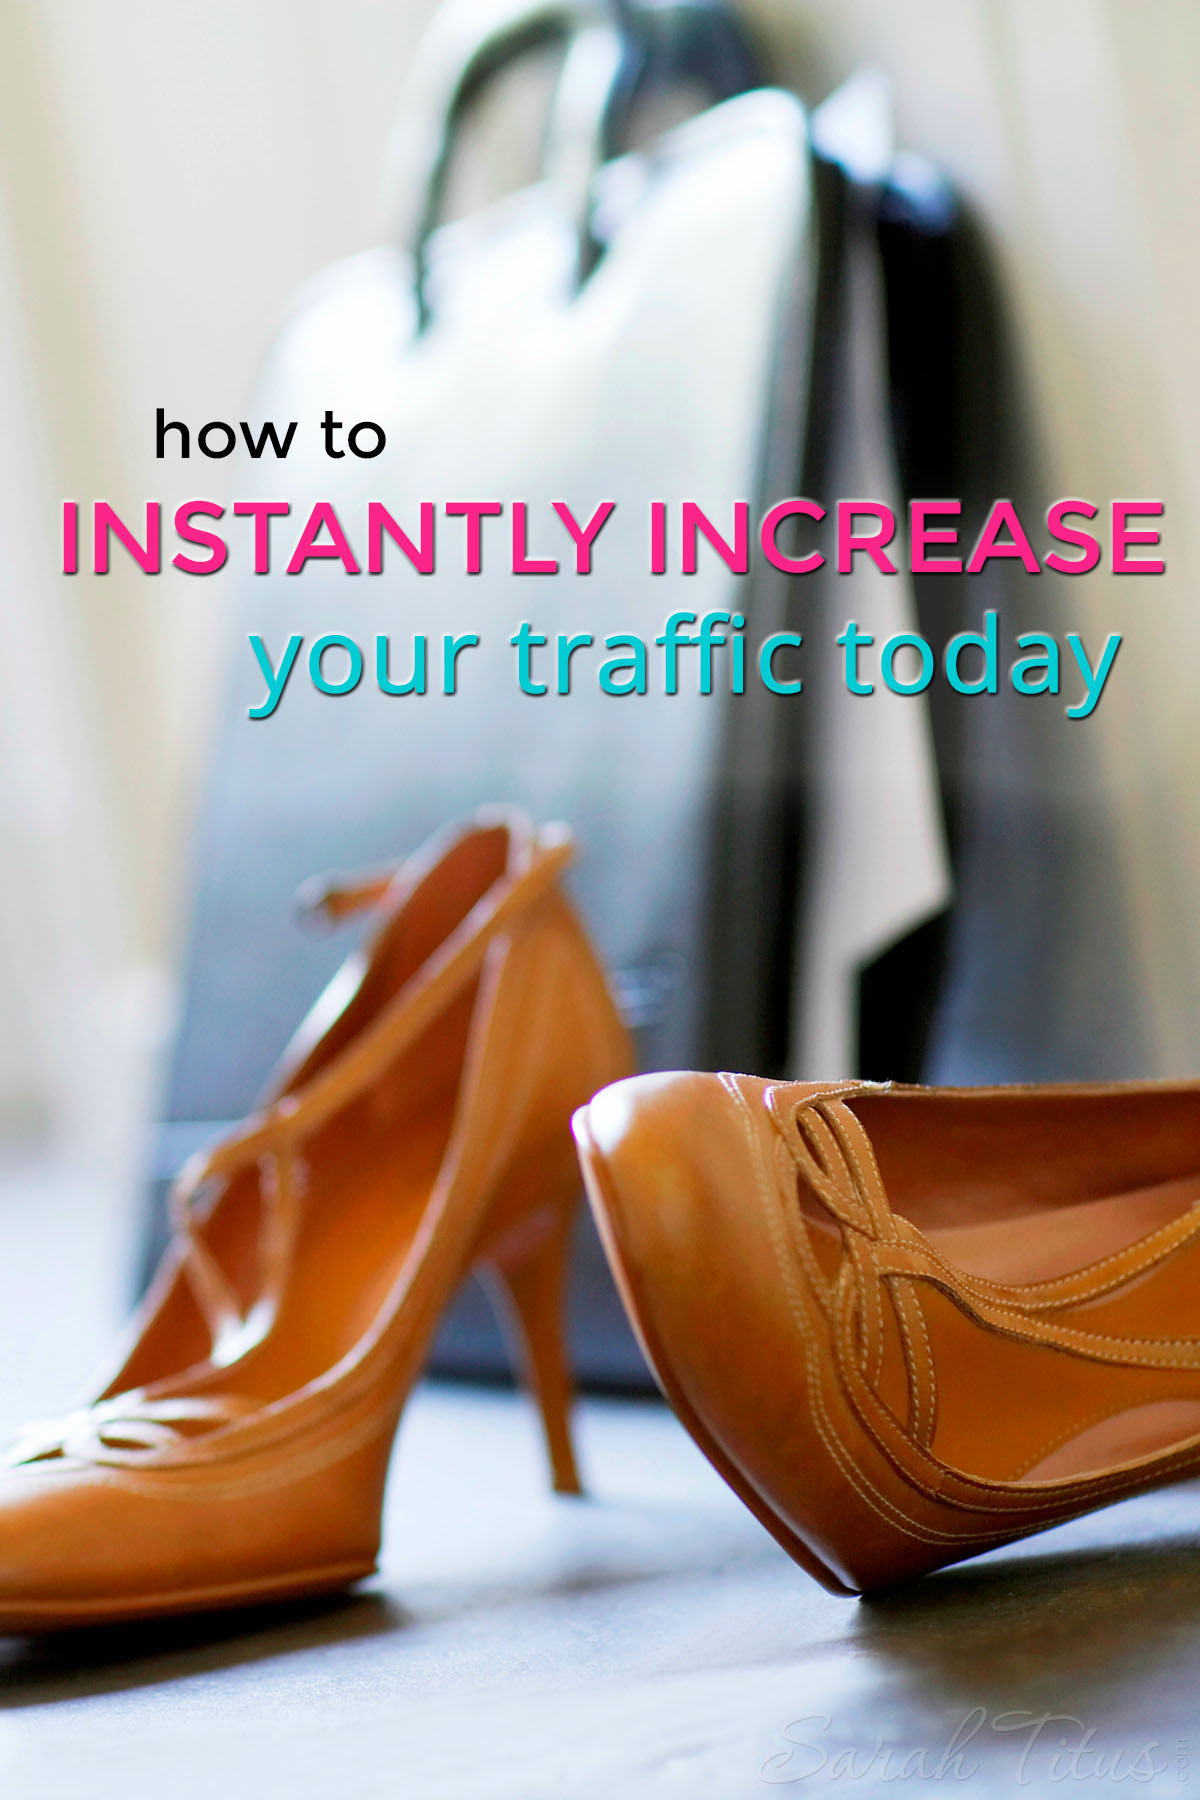 No matter if you just started your blog yesterday or you've been blogging for 10 years, this trick will help you instantly increase your traffic today!